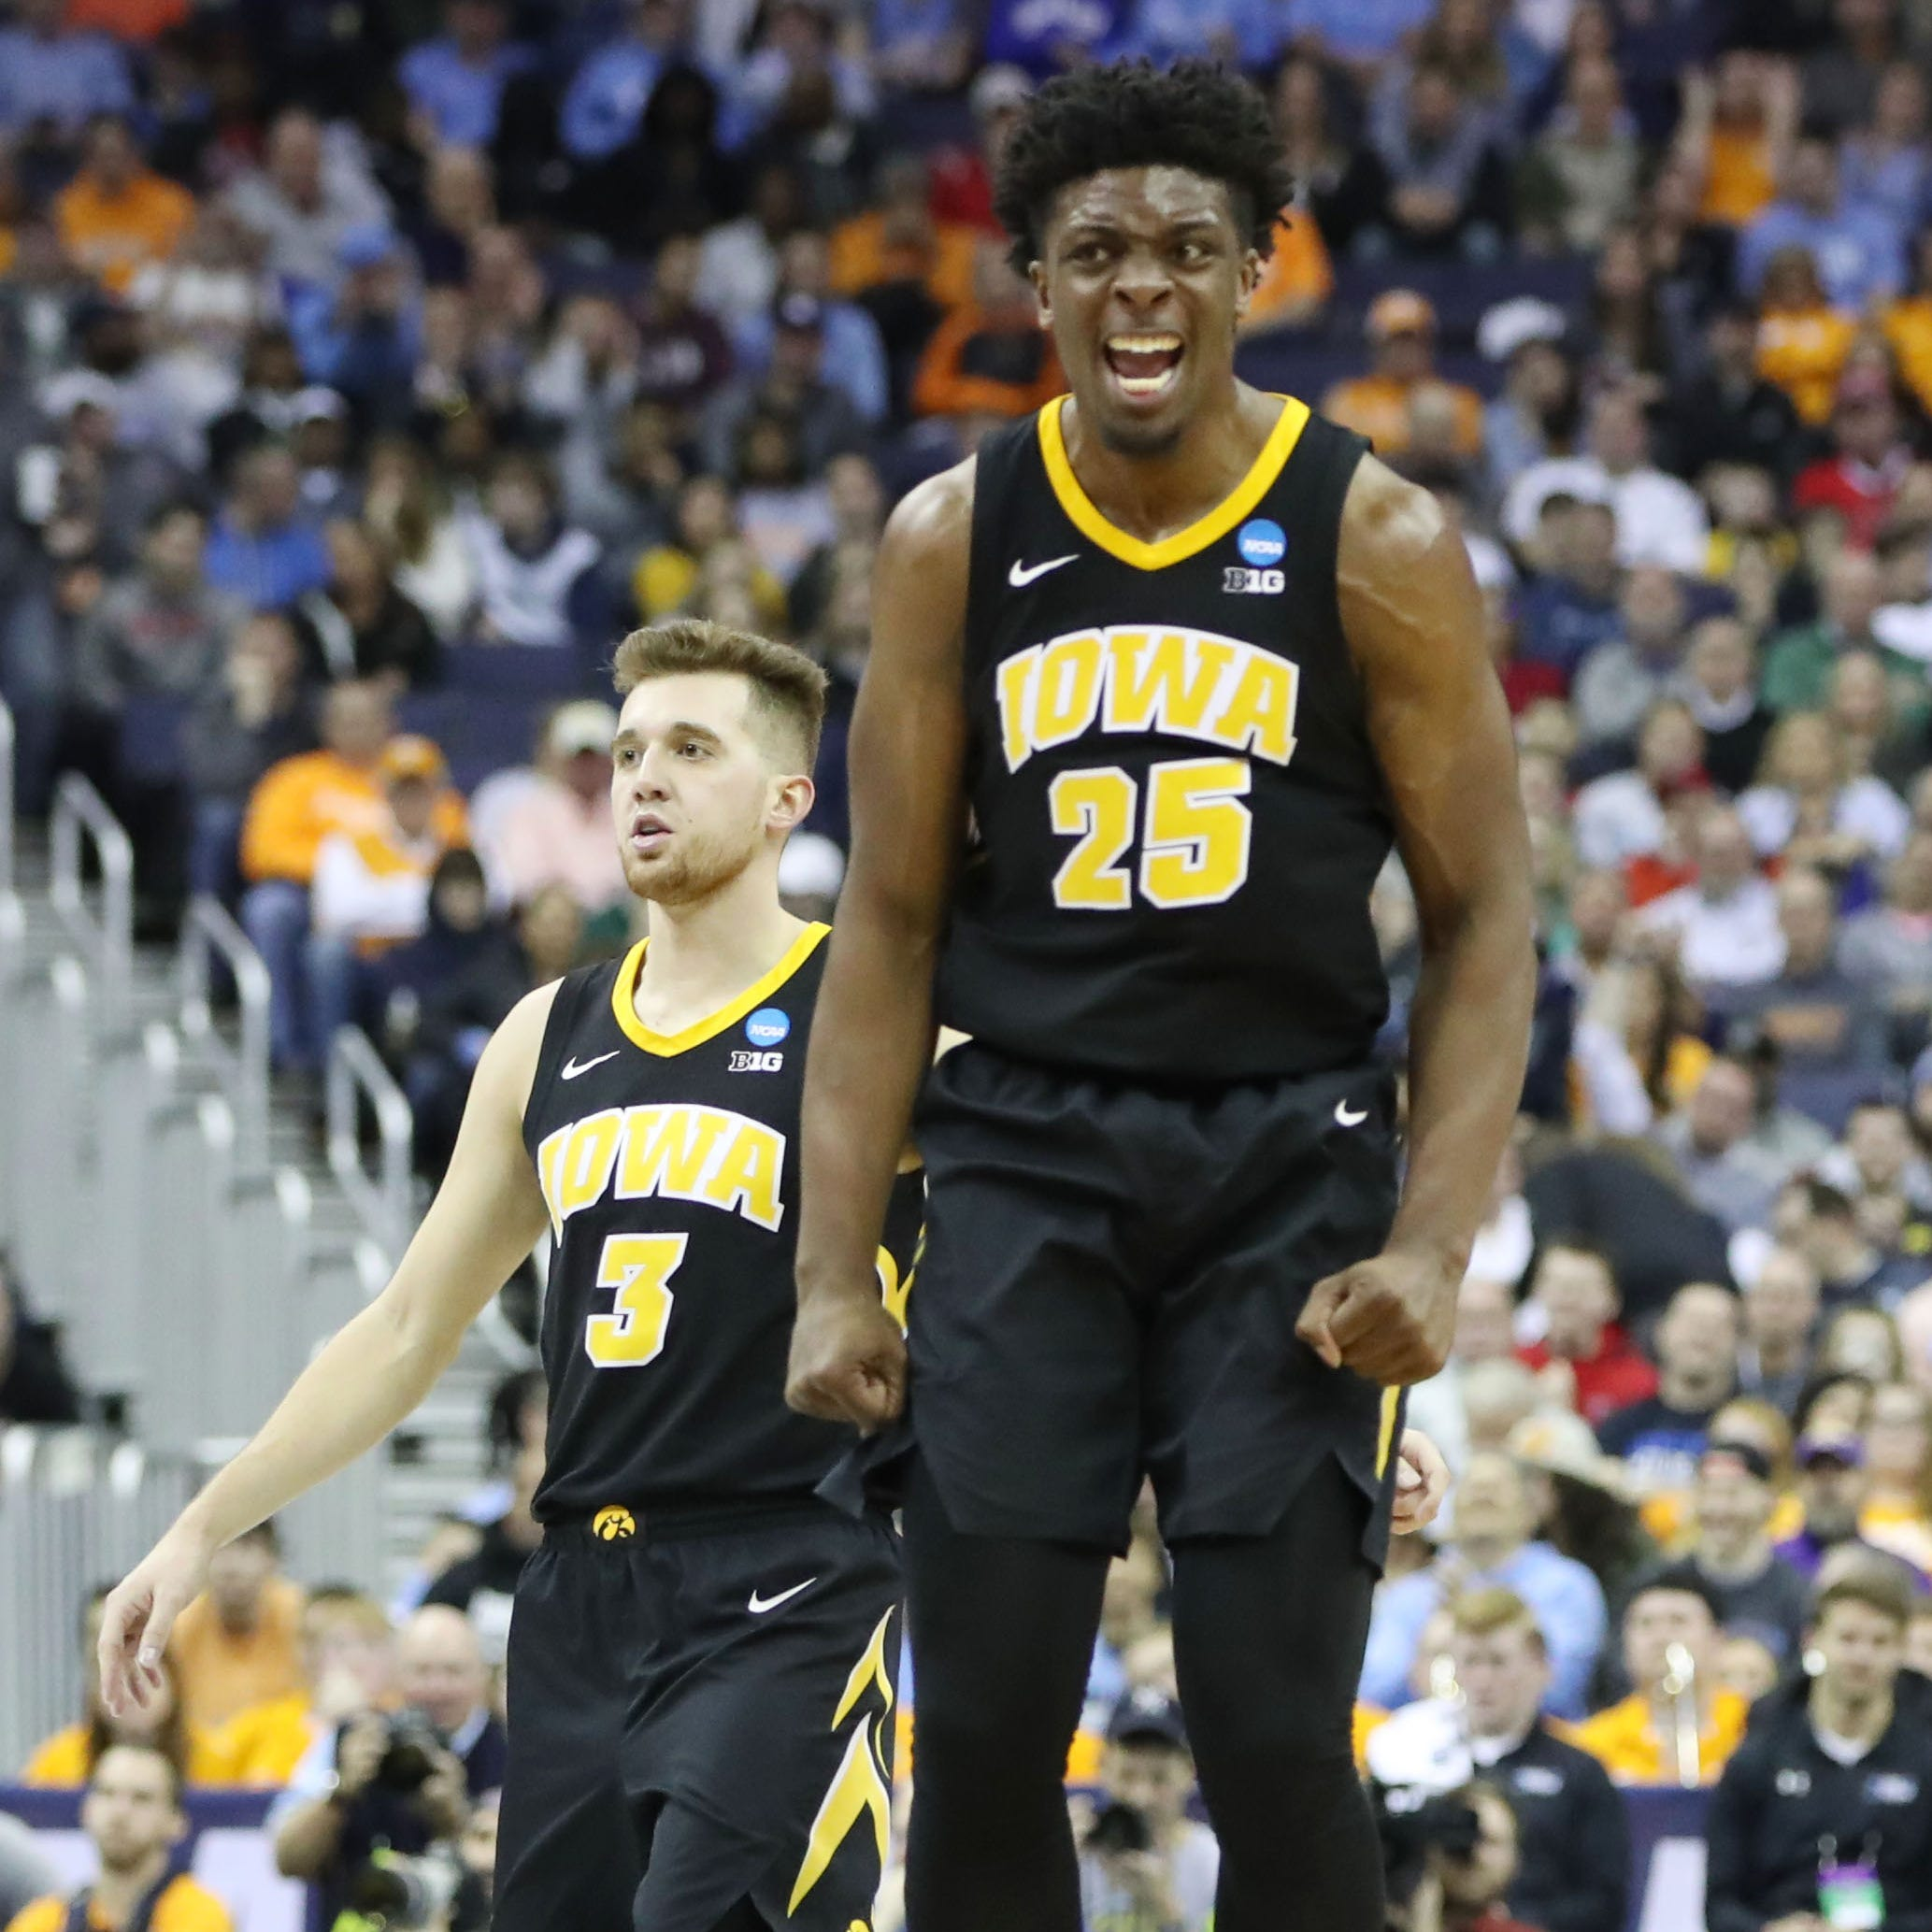 Leistikow's First Thoughts: One of the greatest comebacks in Hawkeye history falls short